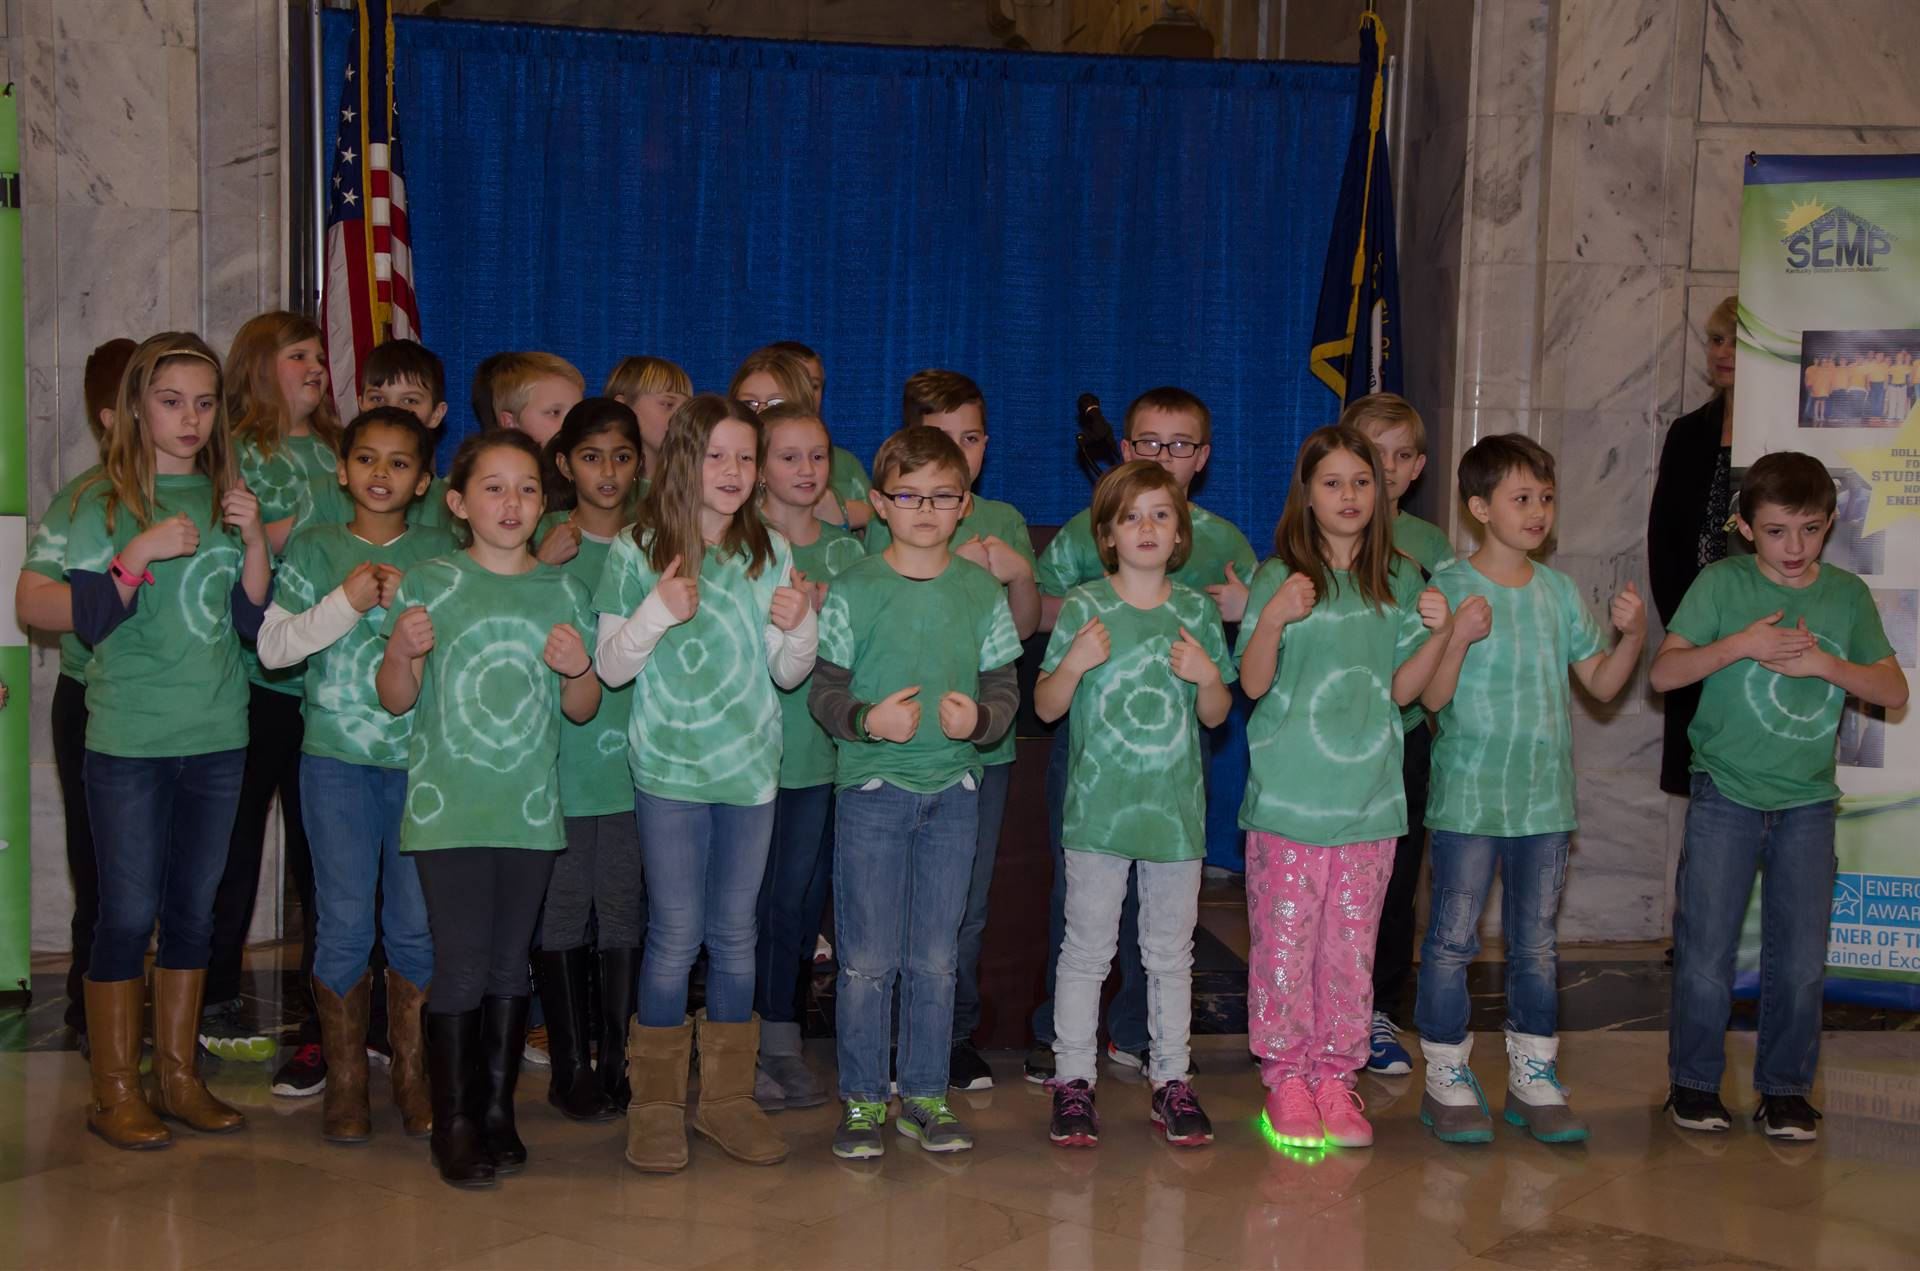 Scott County's Northern Elementary School students performing